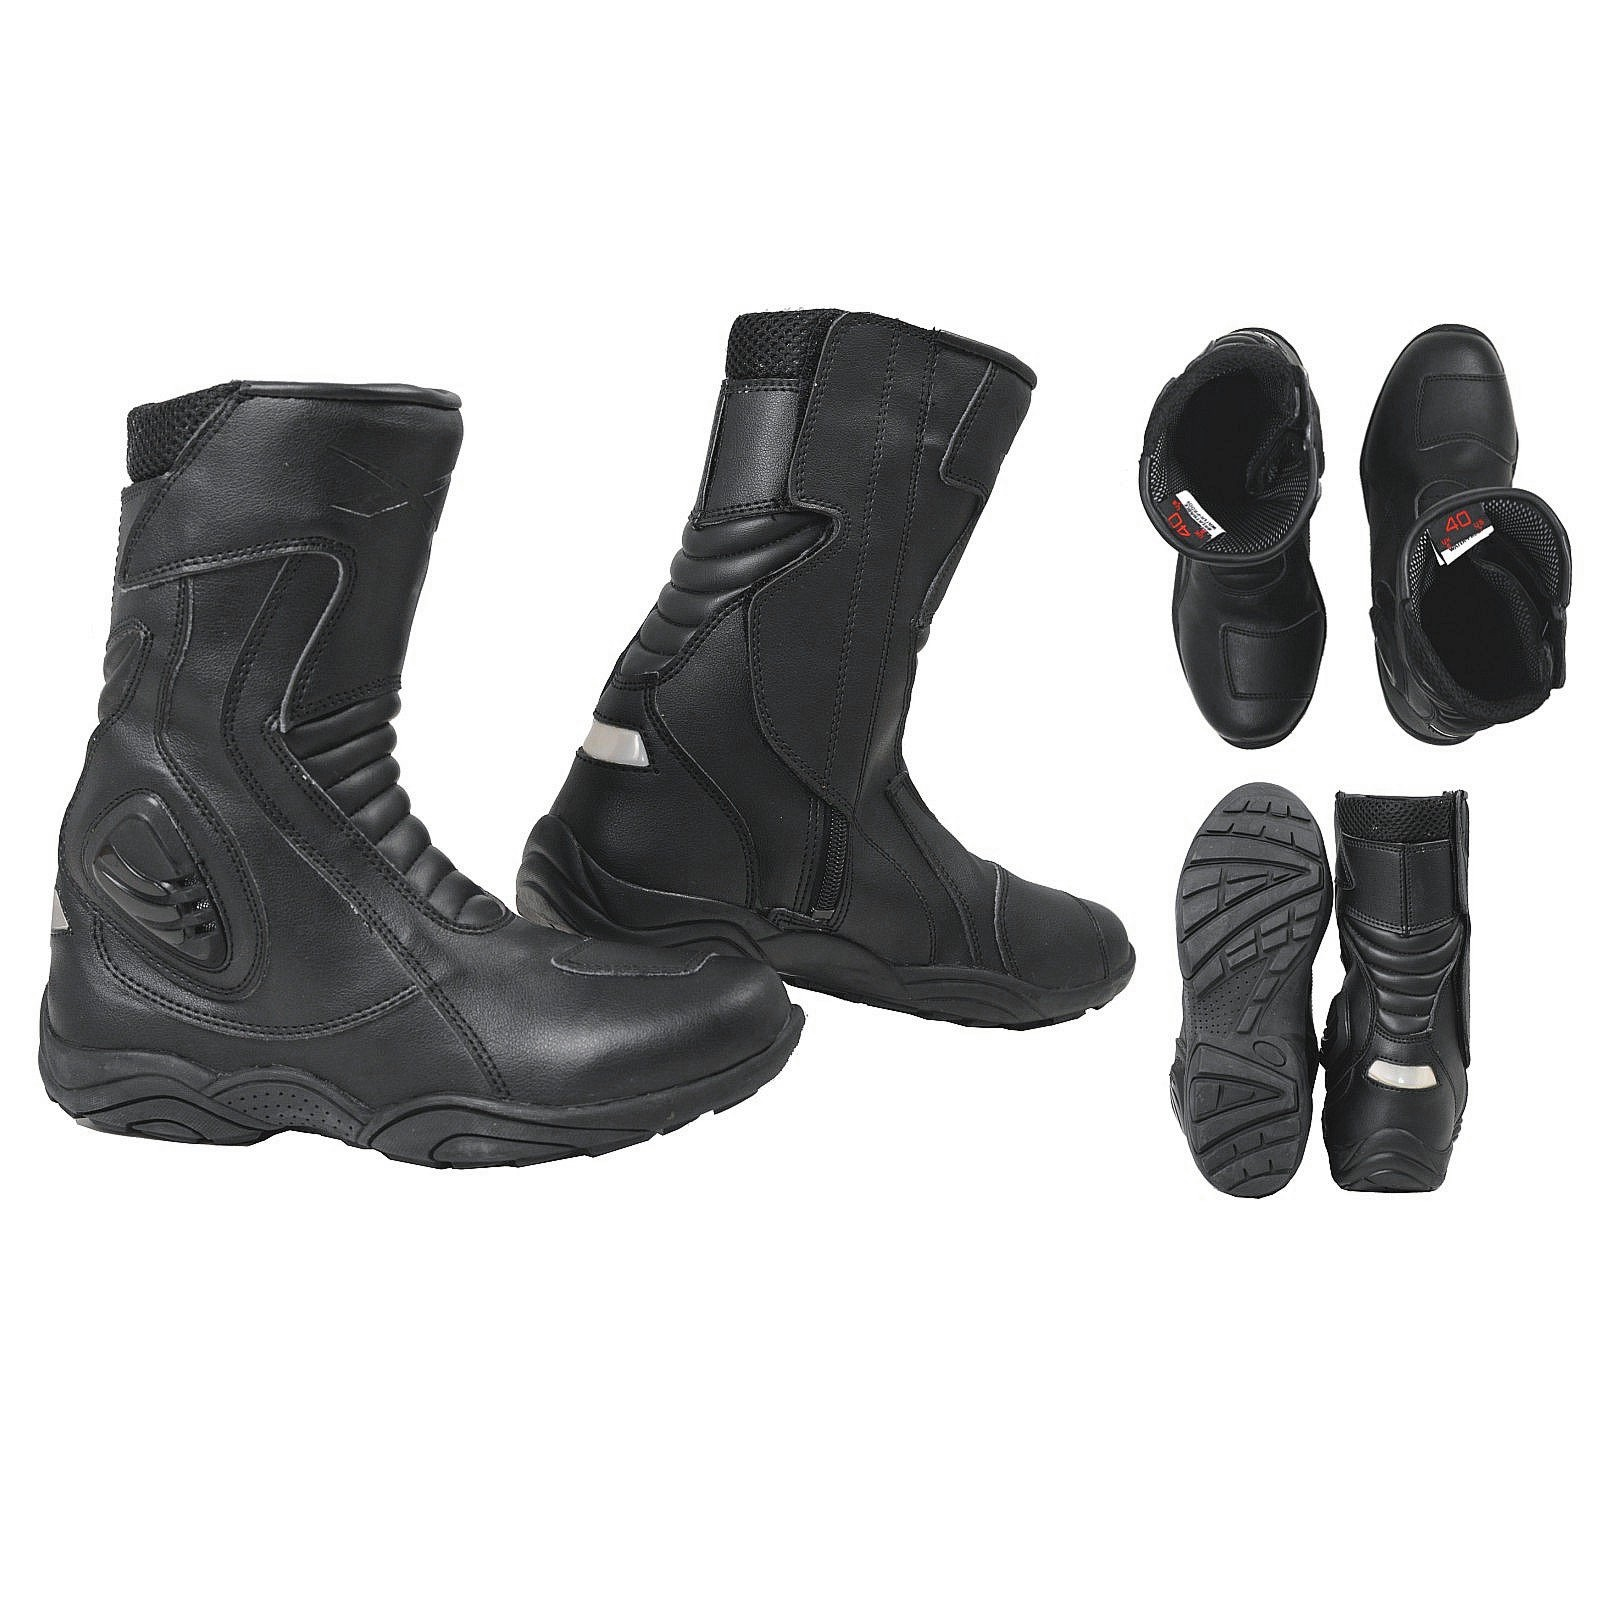 bottes imperm able cuir vachette renforts moto motard chaussures stretch unisexe ebay. Black Bedroom Furniture Sets. Home Design Ideas